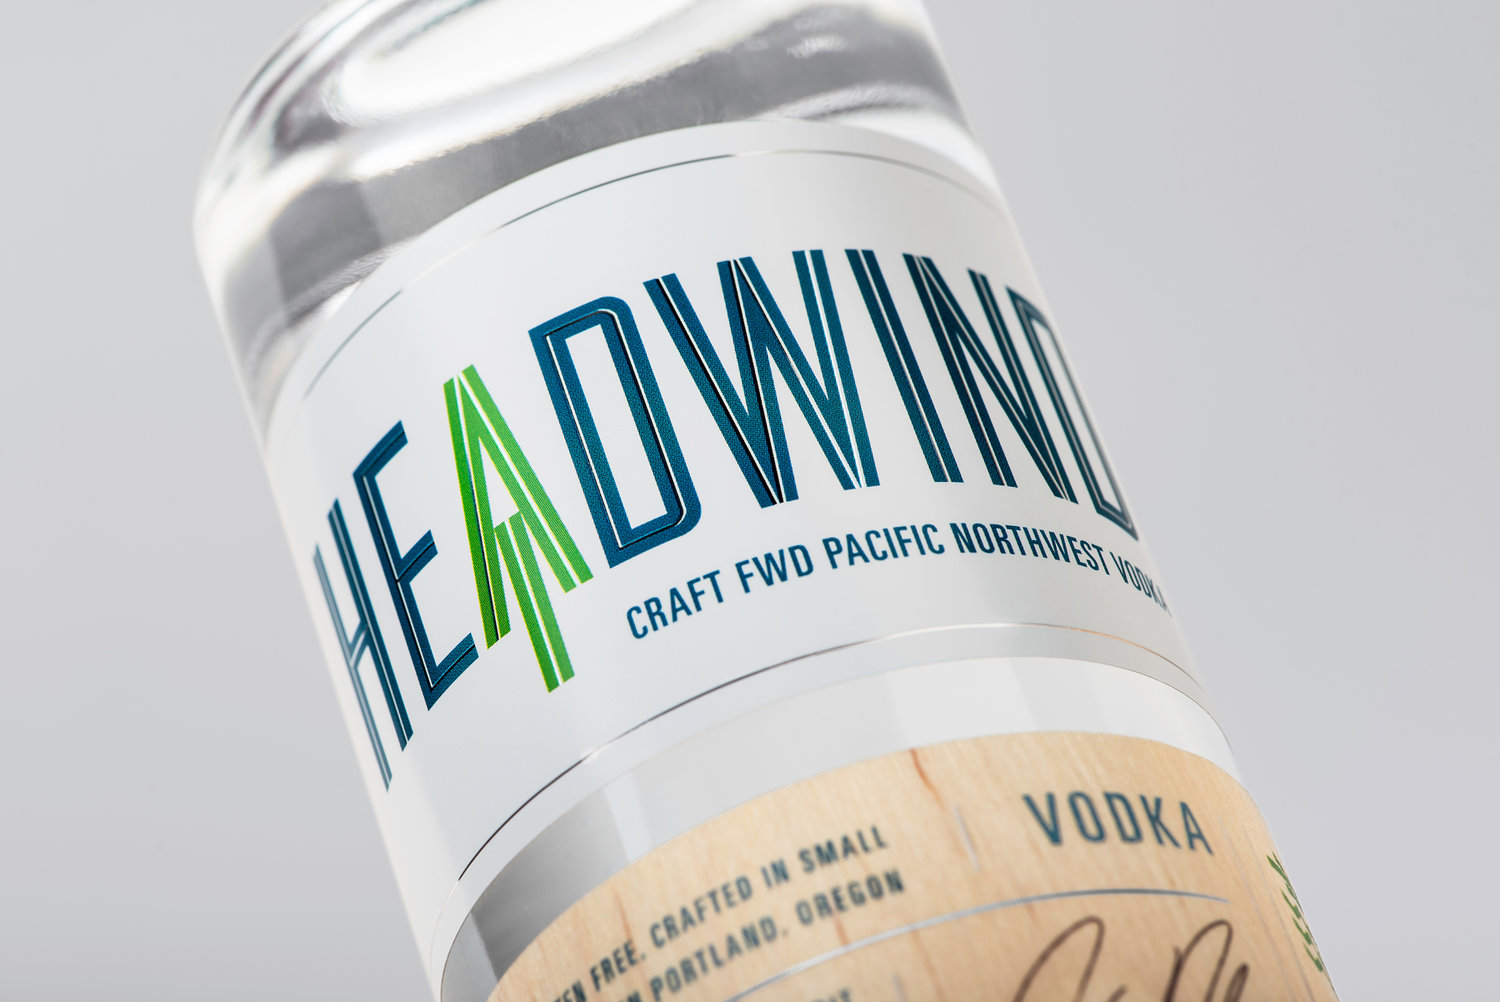 Headwind : Craft FWD Pacific Northwest Vodka